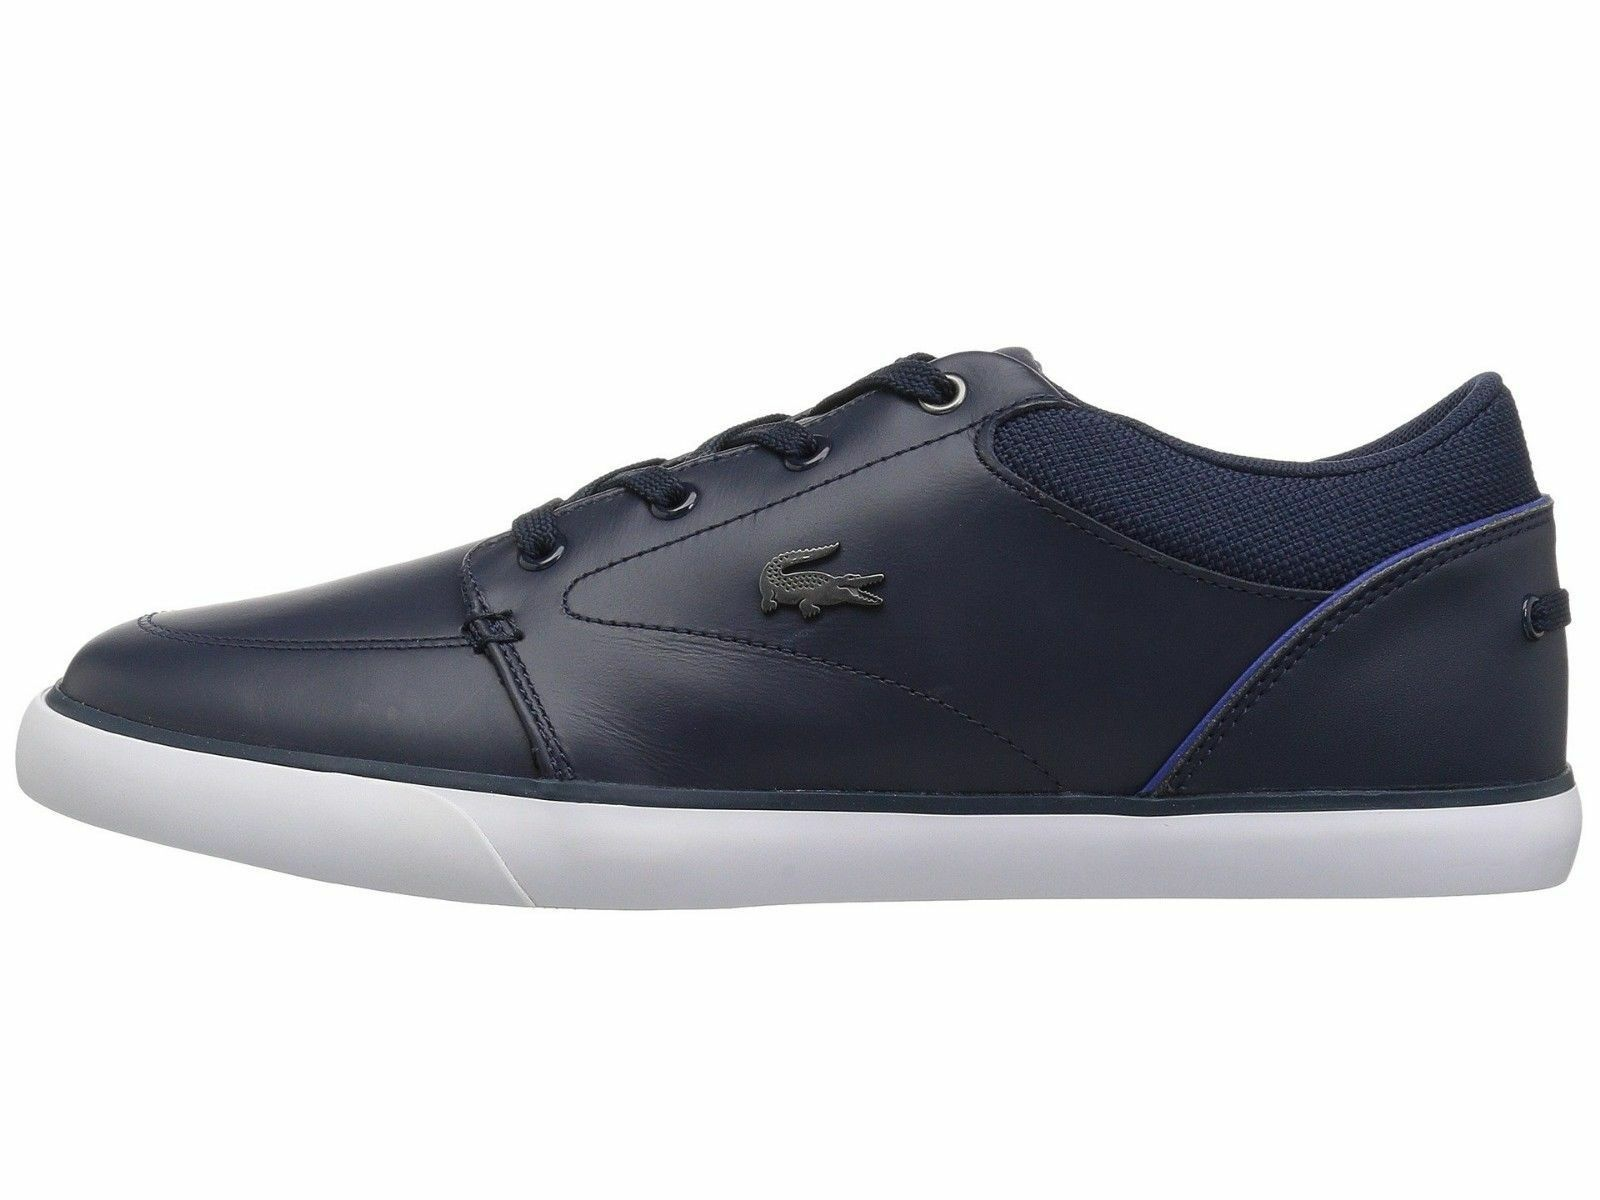 Lacoste Bayliss 318 2 Navy Dark Sneaker Blue Men's Shoe Fashion Sneaker Dark 36CAM0007ND1 a6ce69